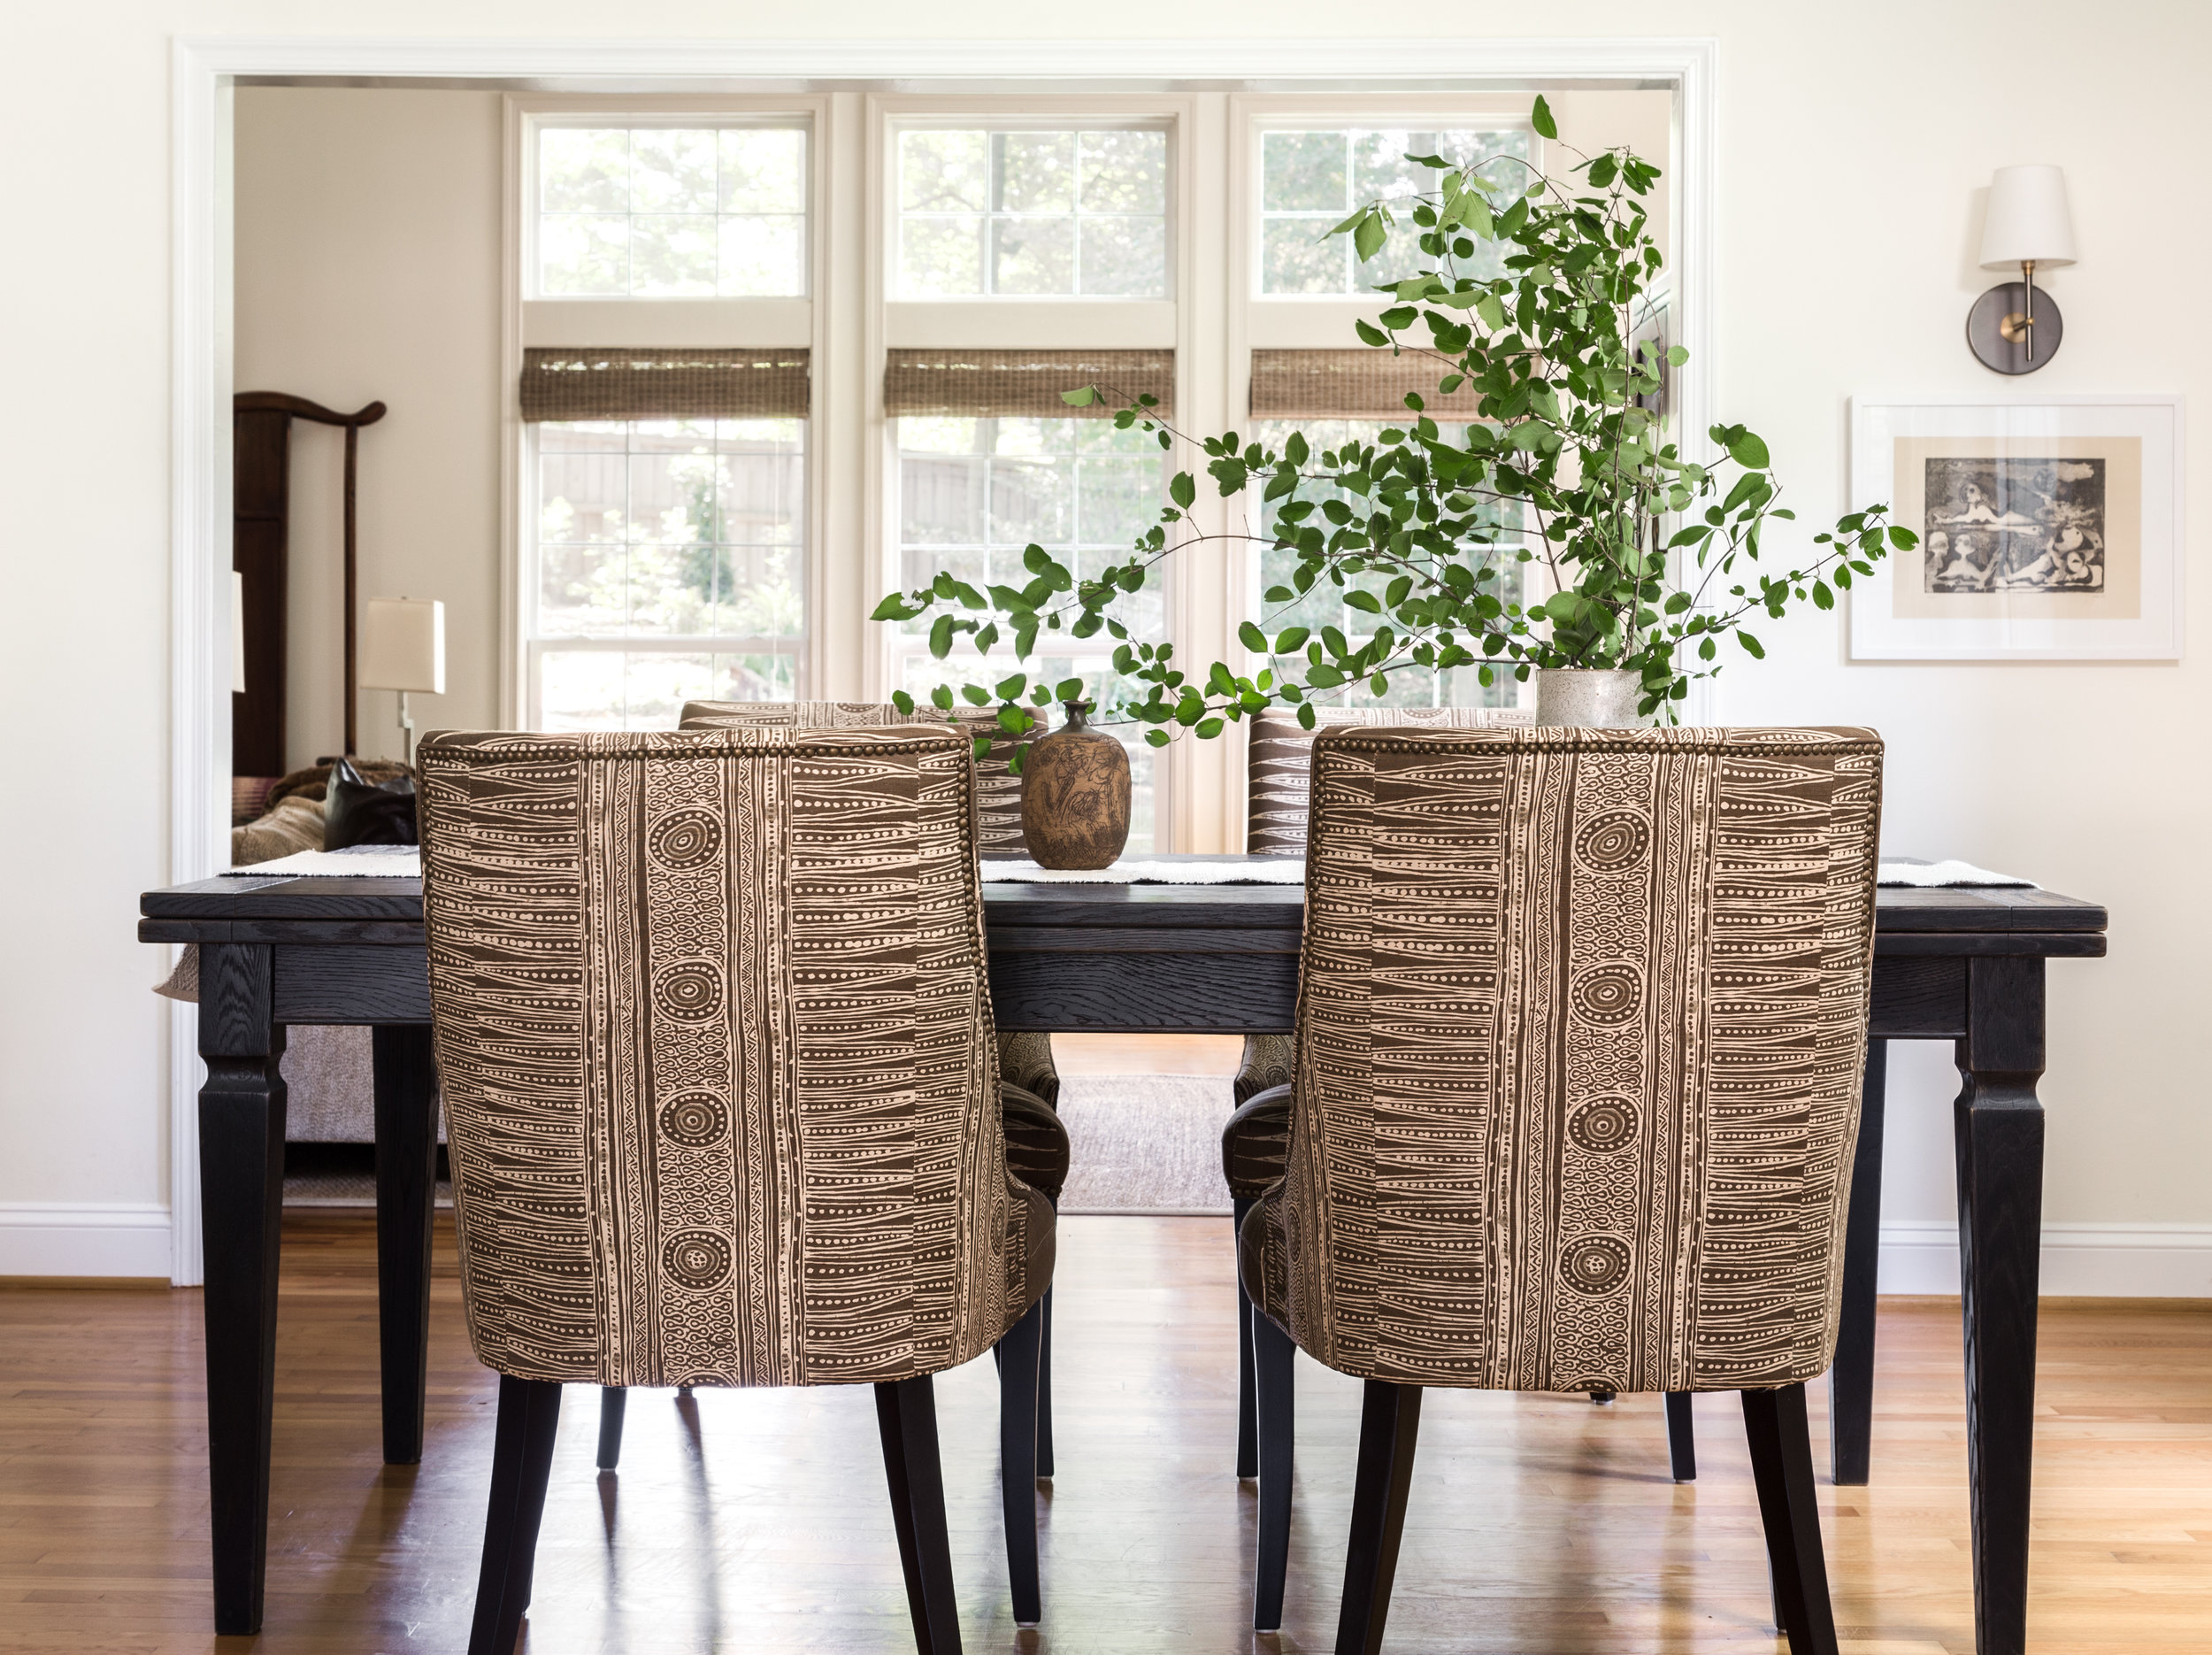 Custom dining chairs covered in a fabulous ethnic print are the centerpiece of the dining area.